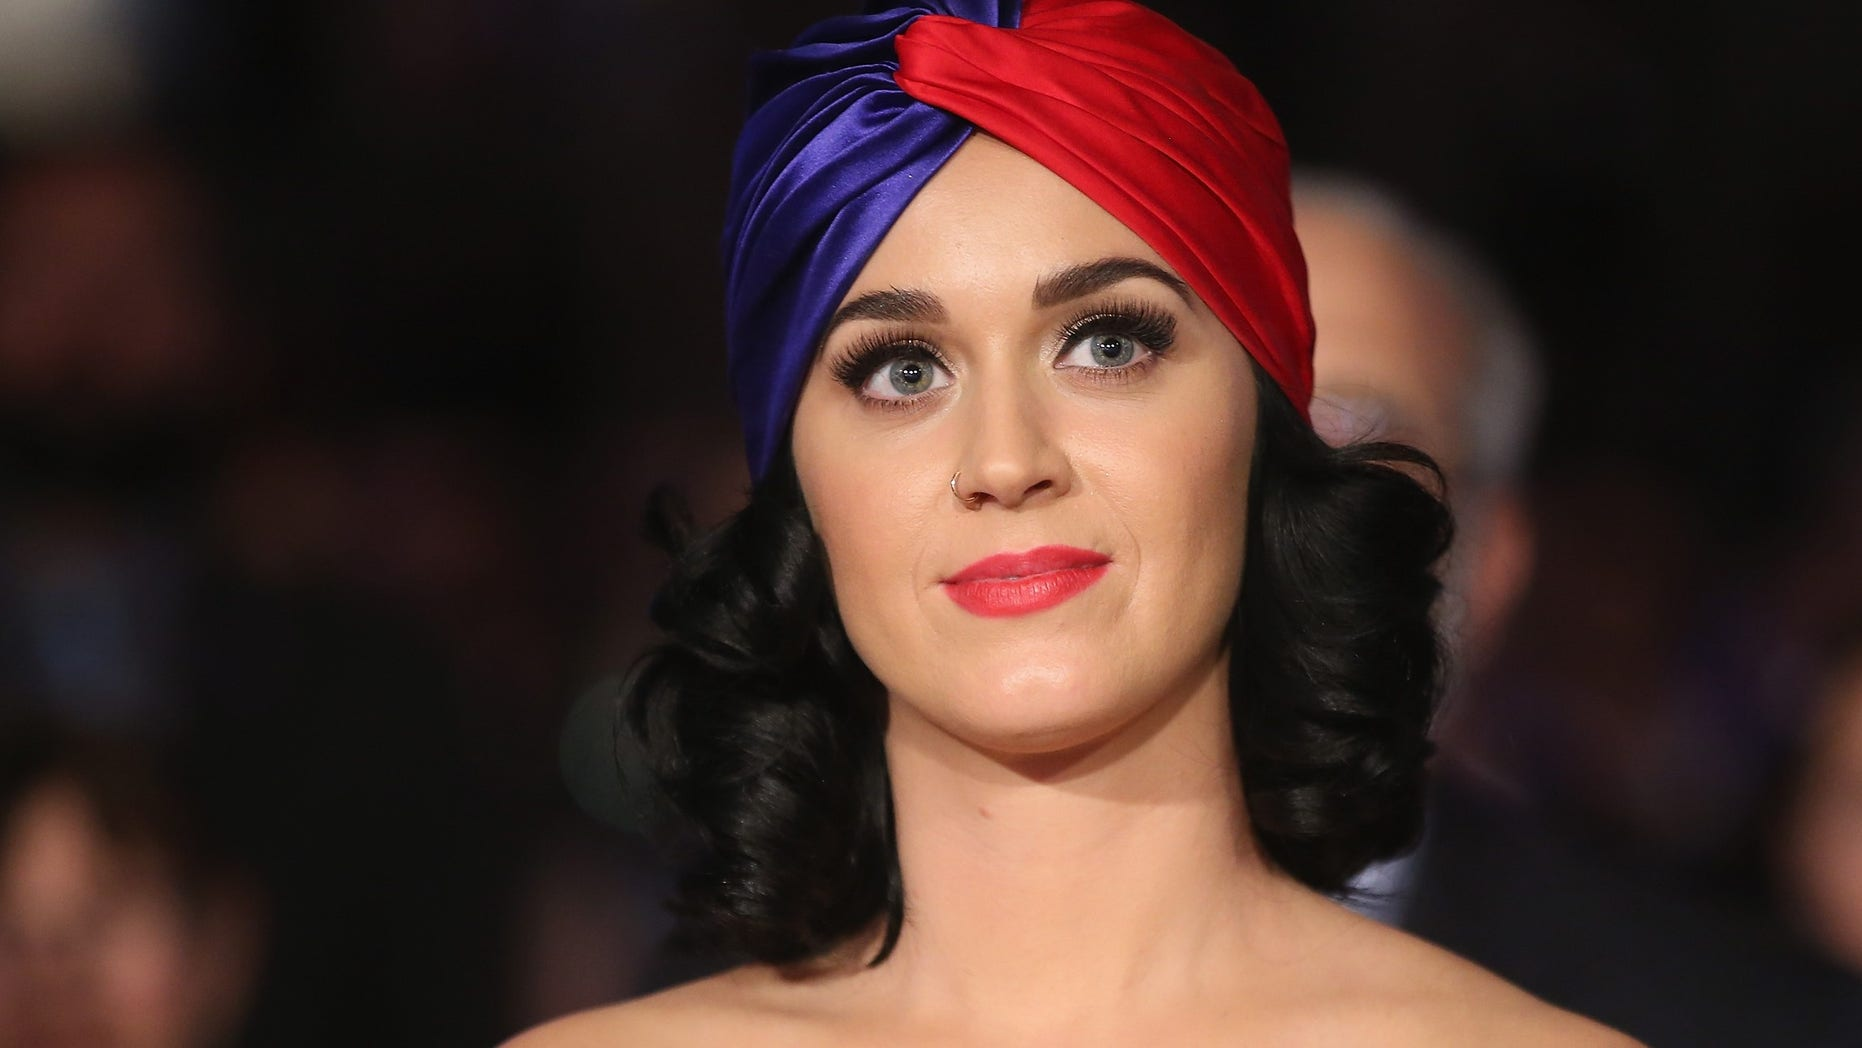 Katy Perry gives Hillary Clinton a presidential birthday gift. (Photo by Scott Olson/Getty Images)